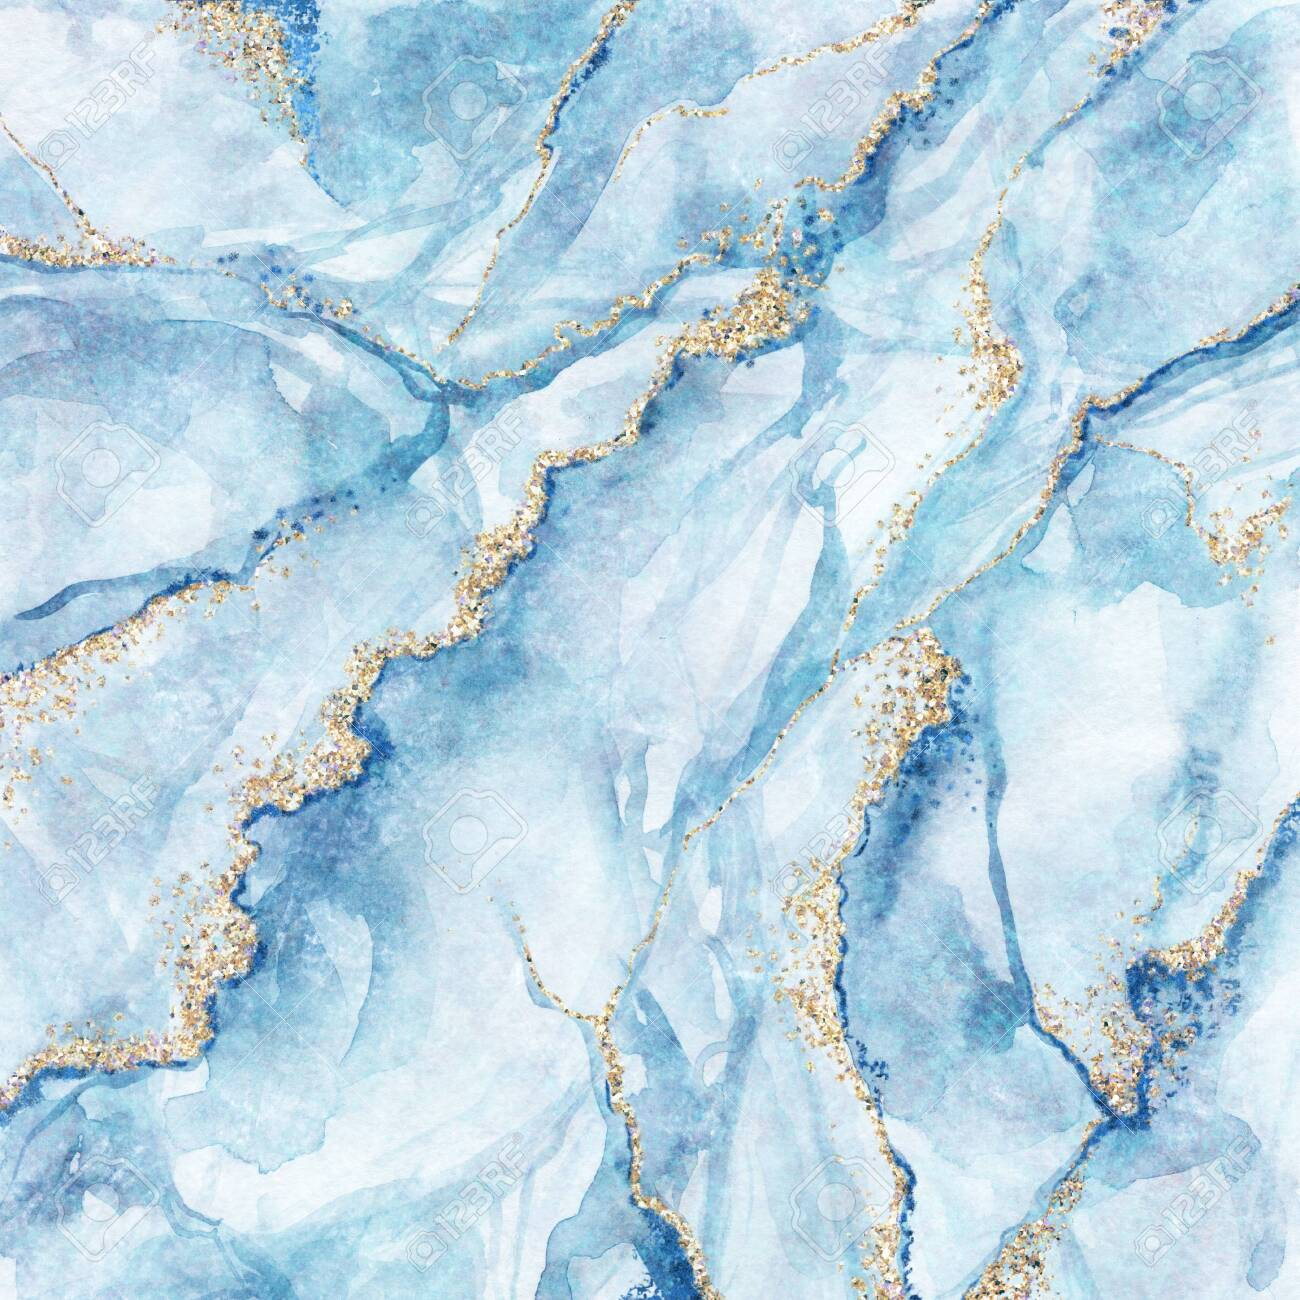 Abstract Background White Blue Marble With Gold Glitter Veins Stock Photo Picture And Royalty Free Image Image 128409653